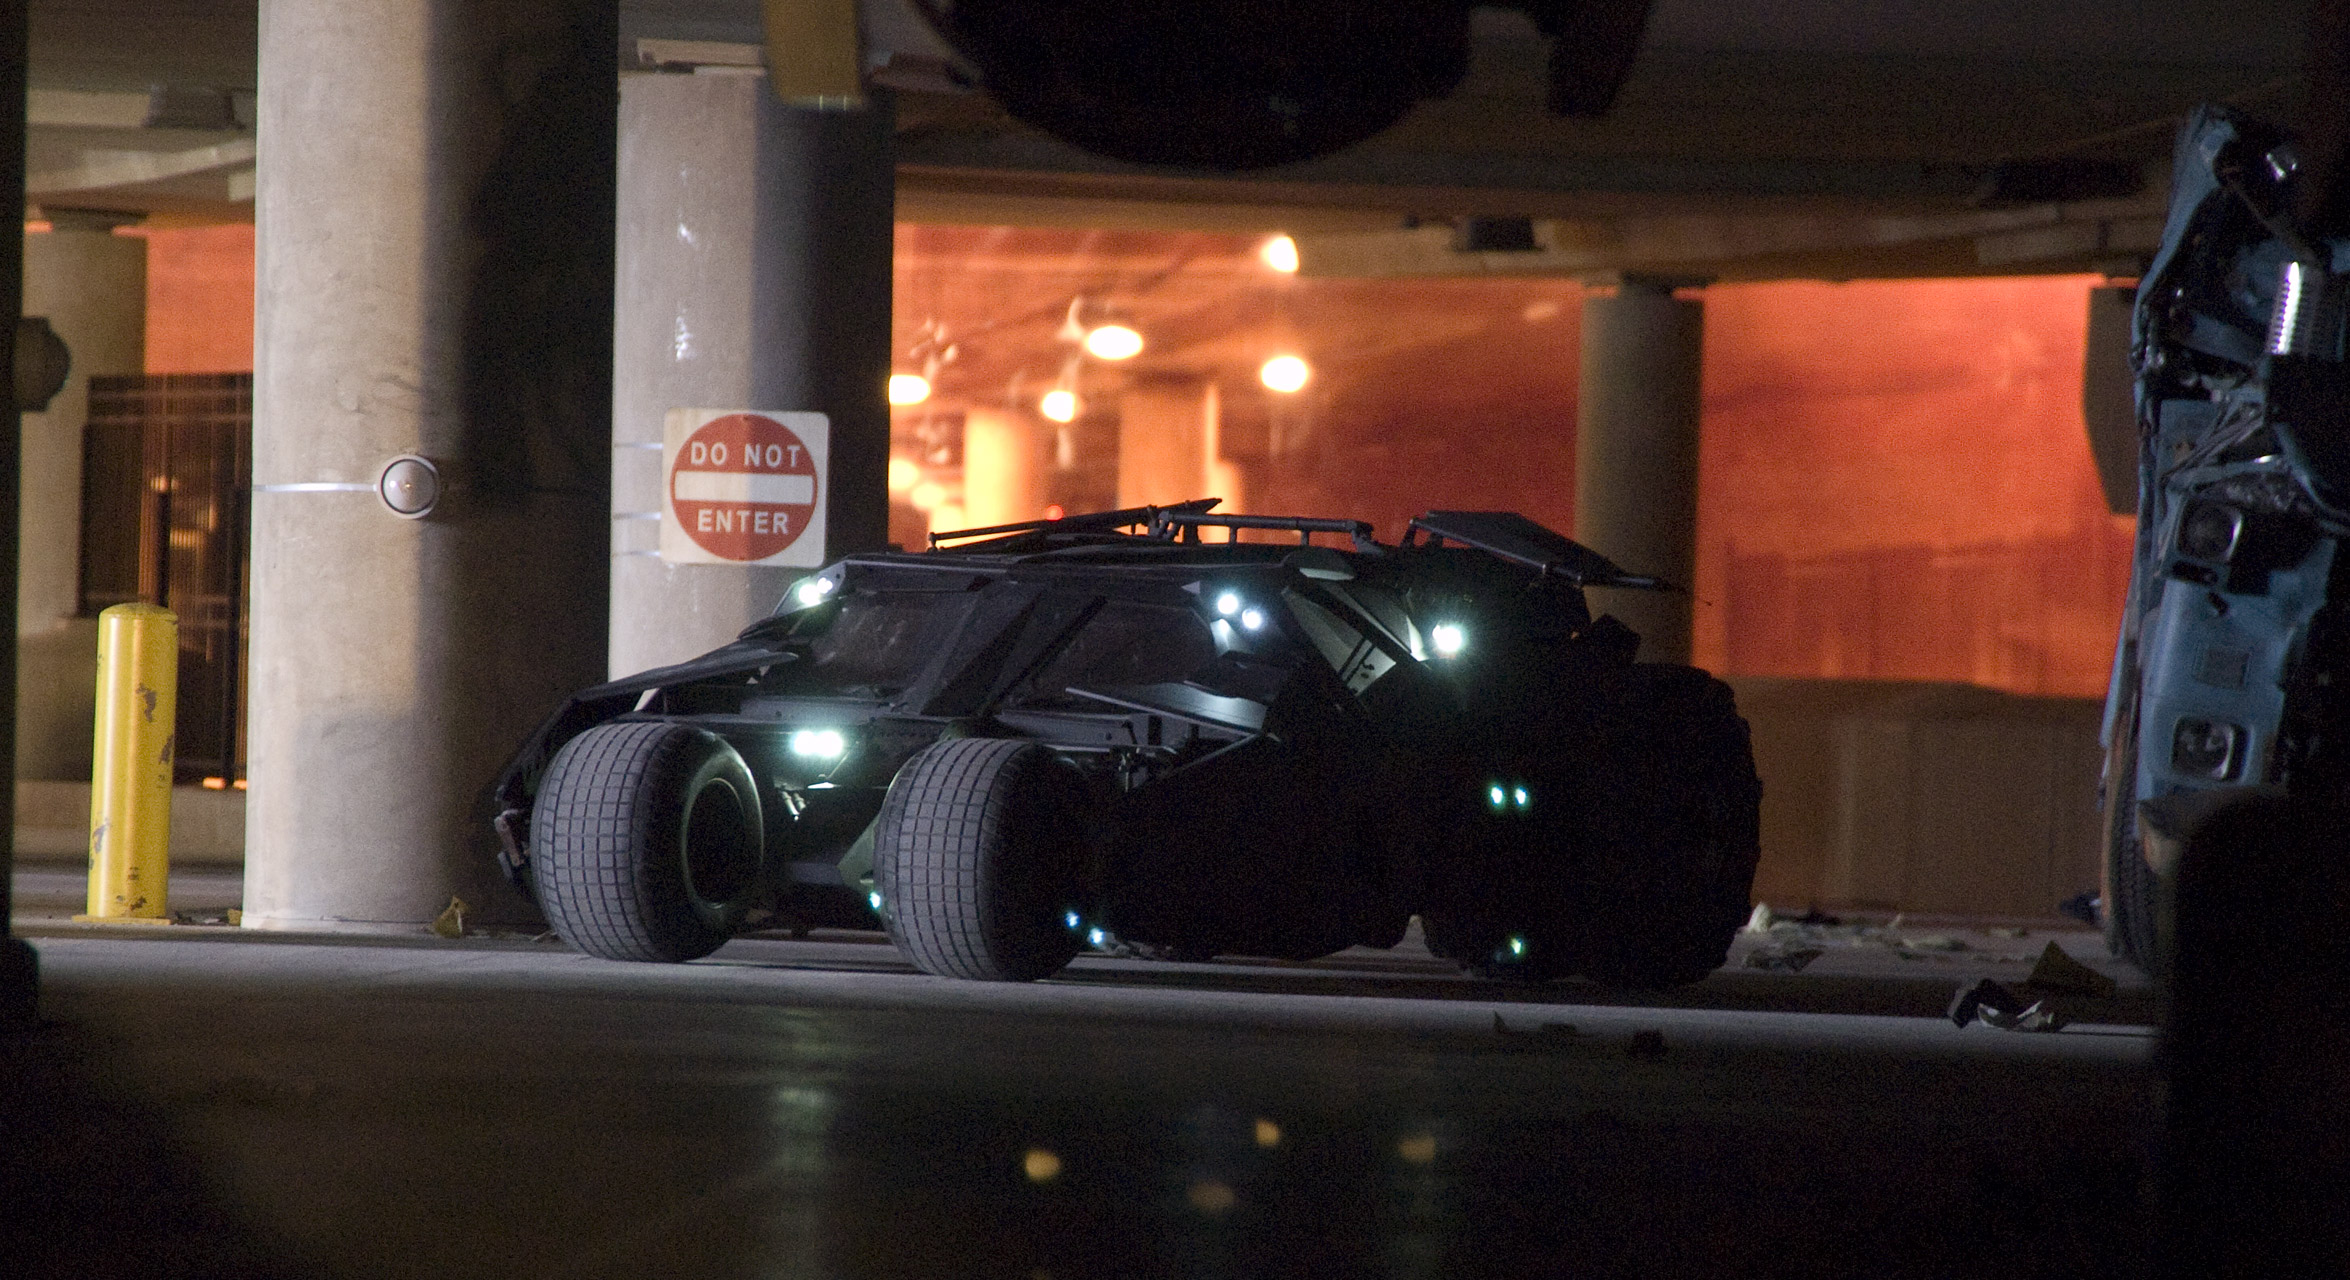 731_1905_darkknight_onset_2.jpg